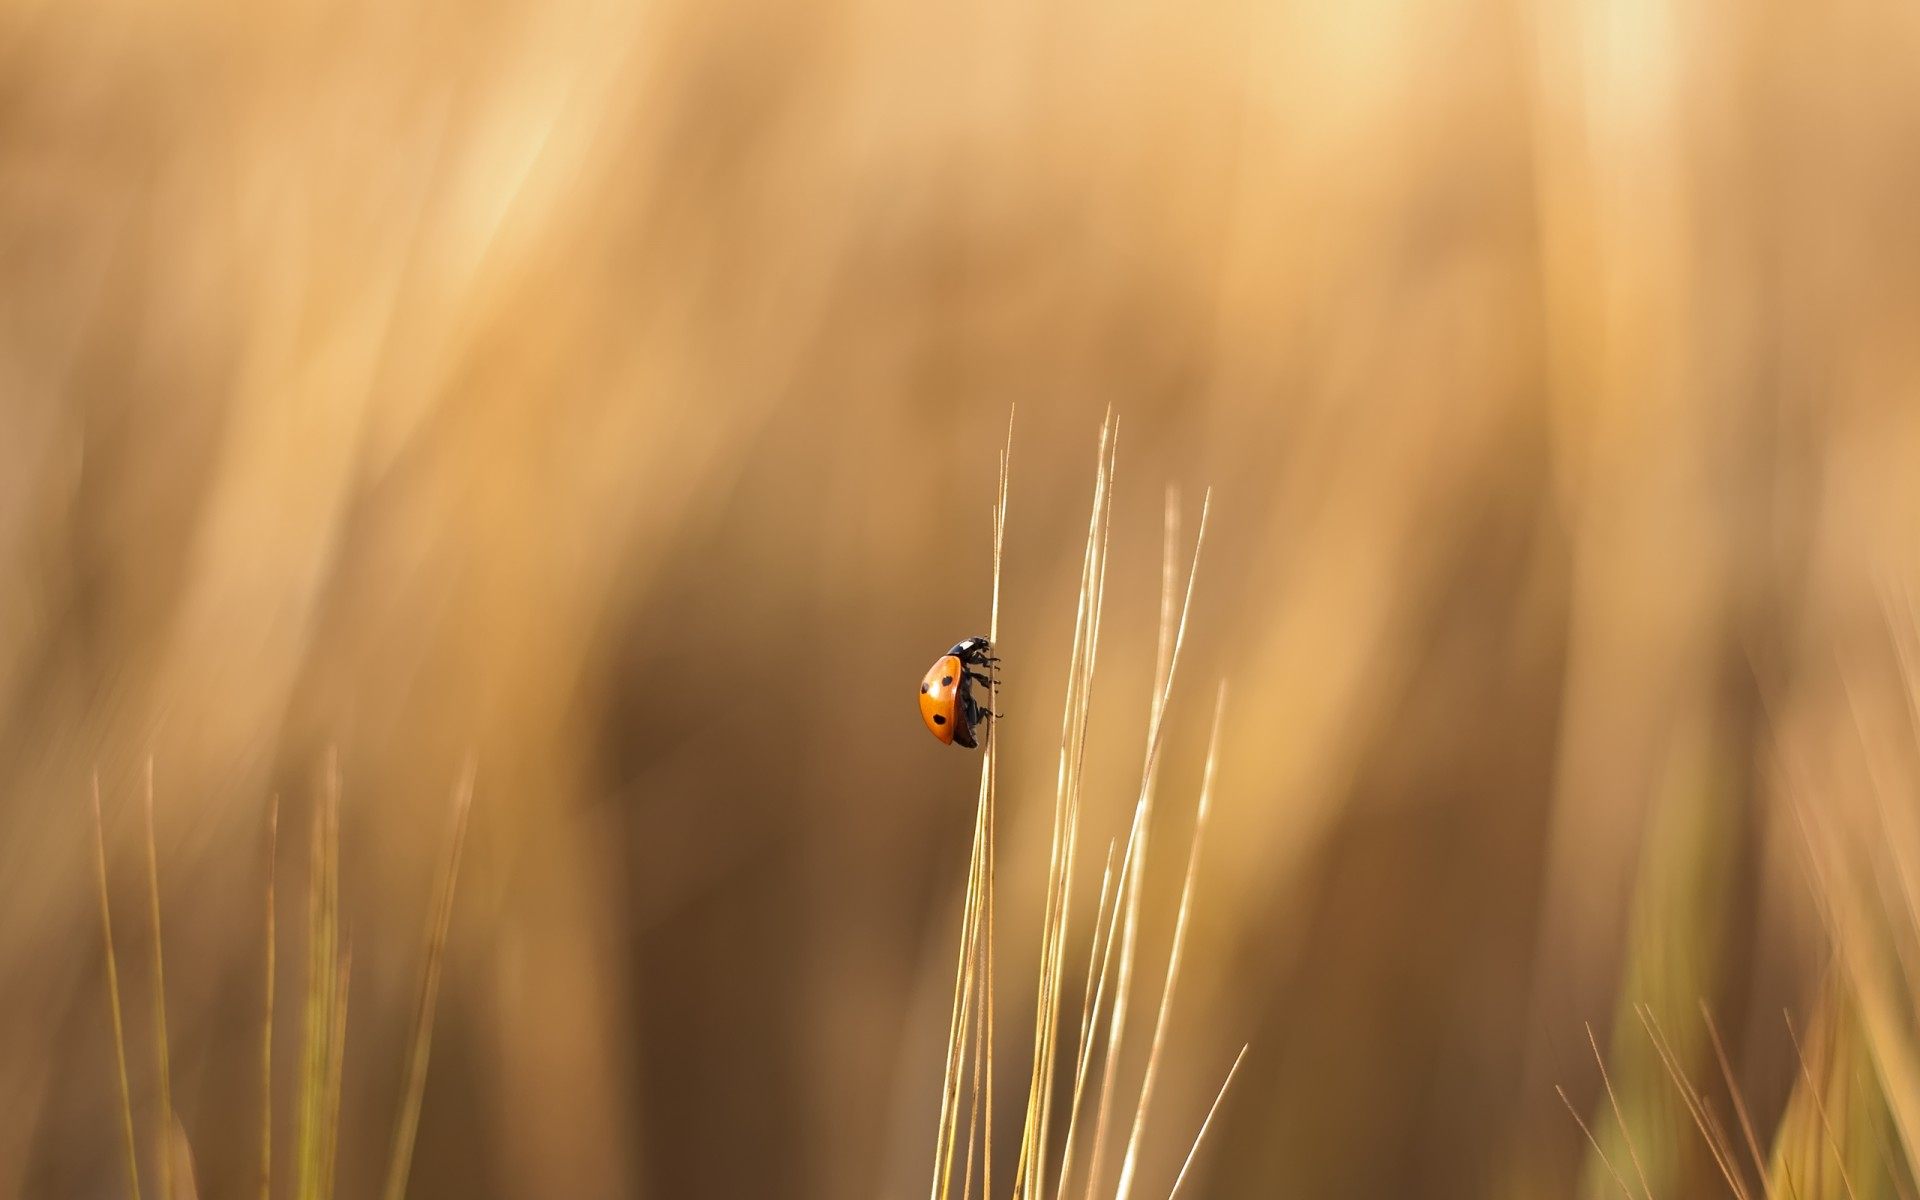 insects insect ladybug beetle grass blur nature sun summer fair weather wheat outdoors